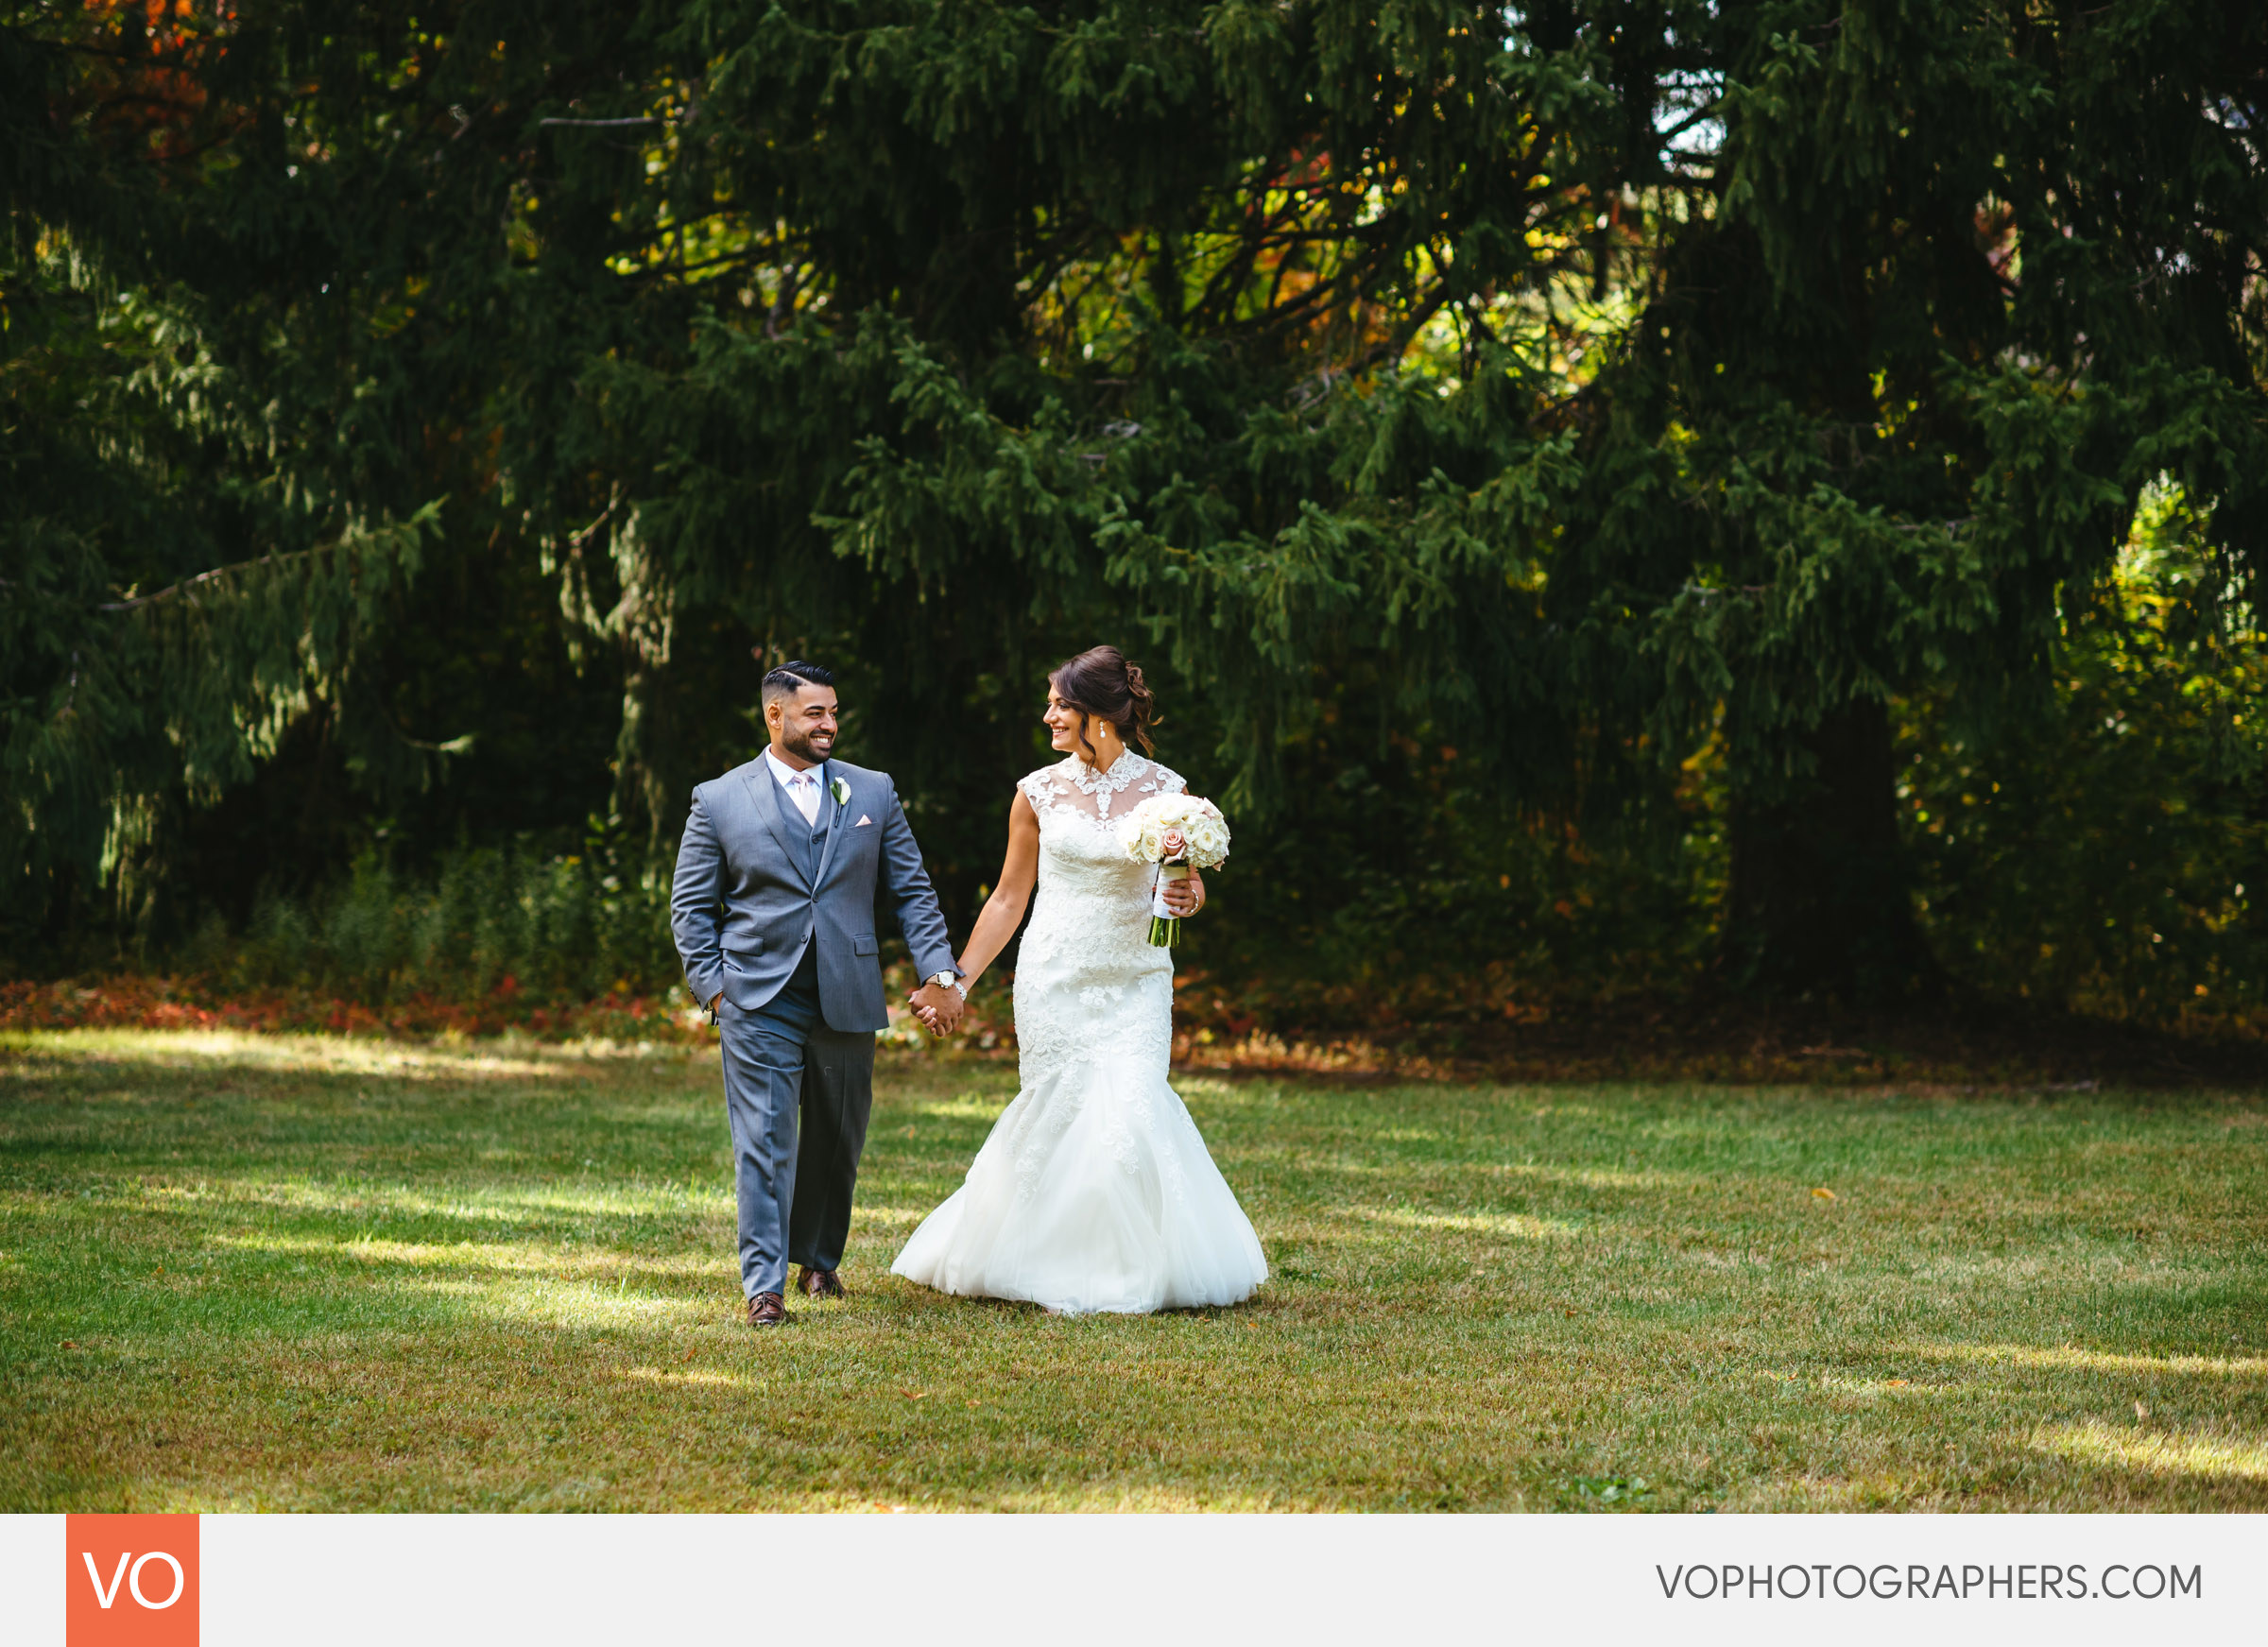 Oriana-Barem-Lakeview-Pavilion-Wedding-0015